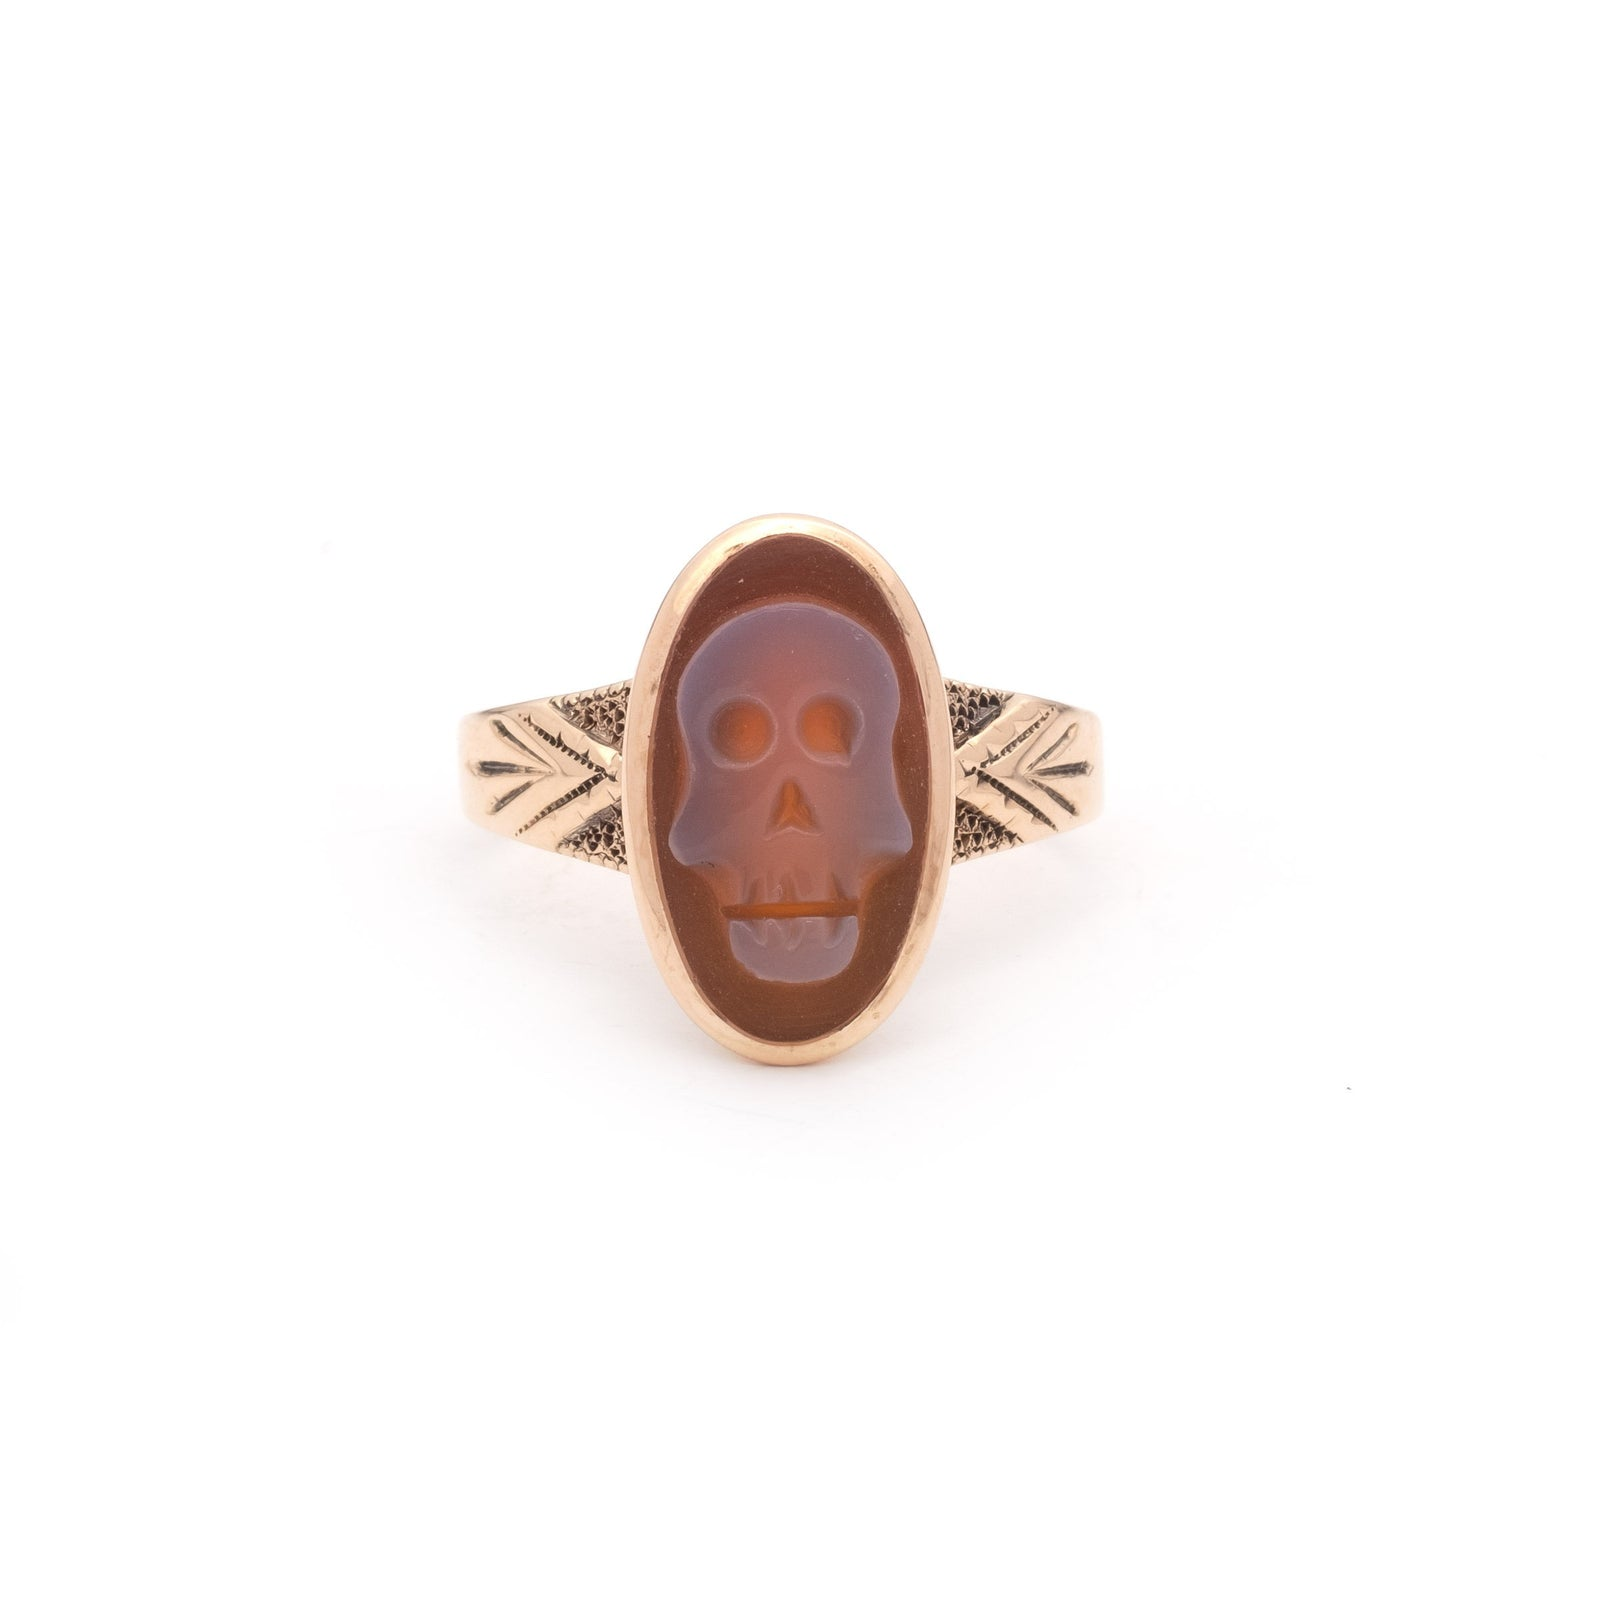 Carnelian and 14k Gold Memento Mori Ring with Chevron Shoulders